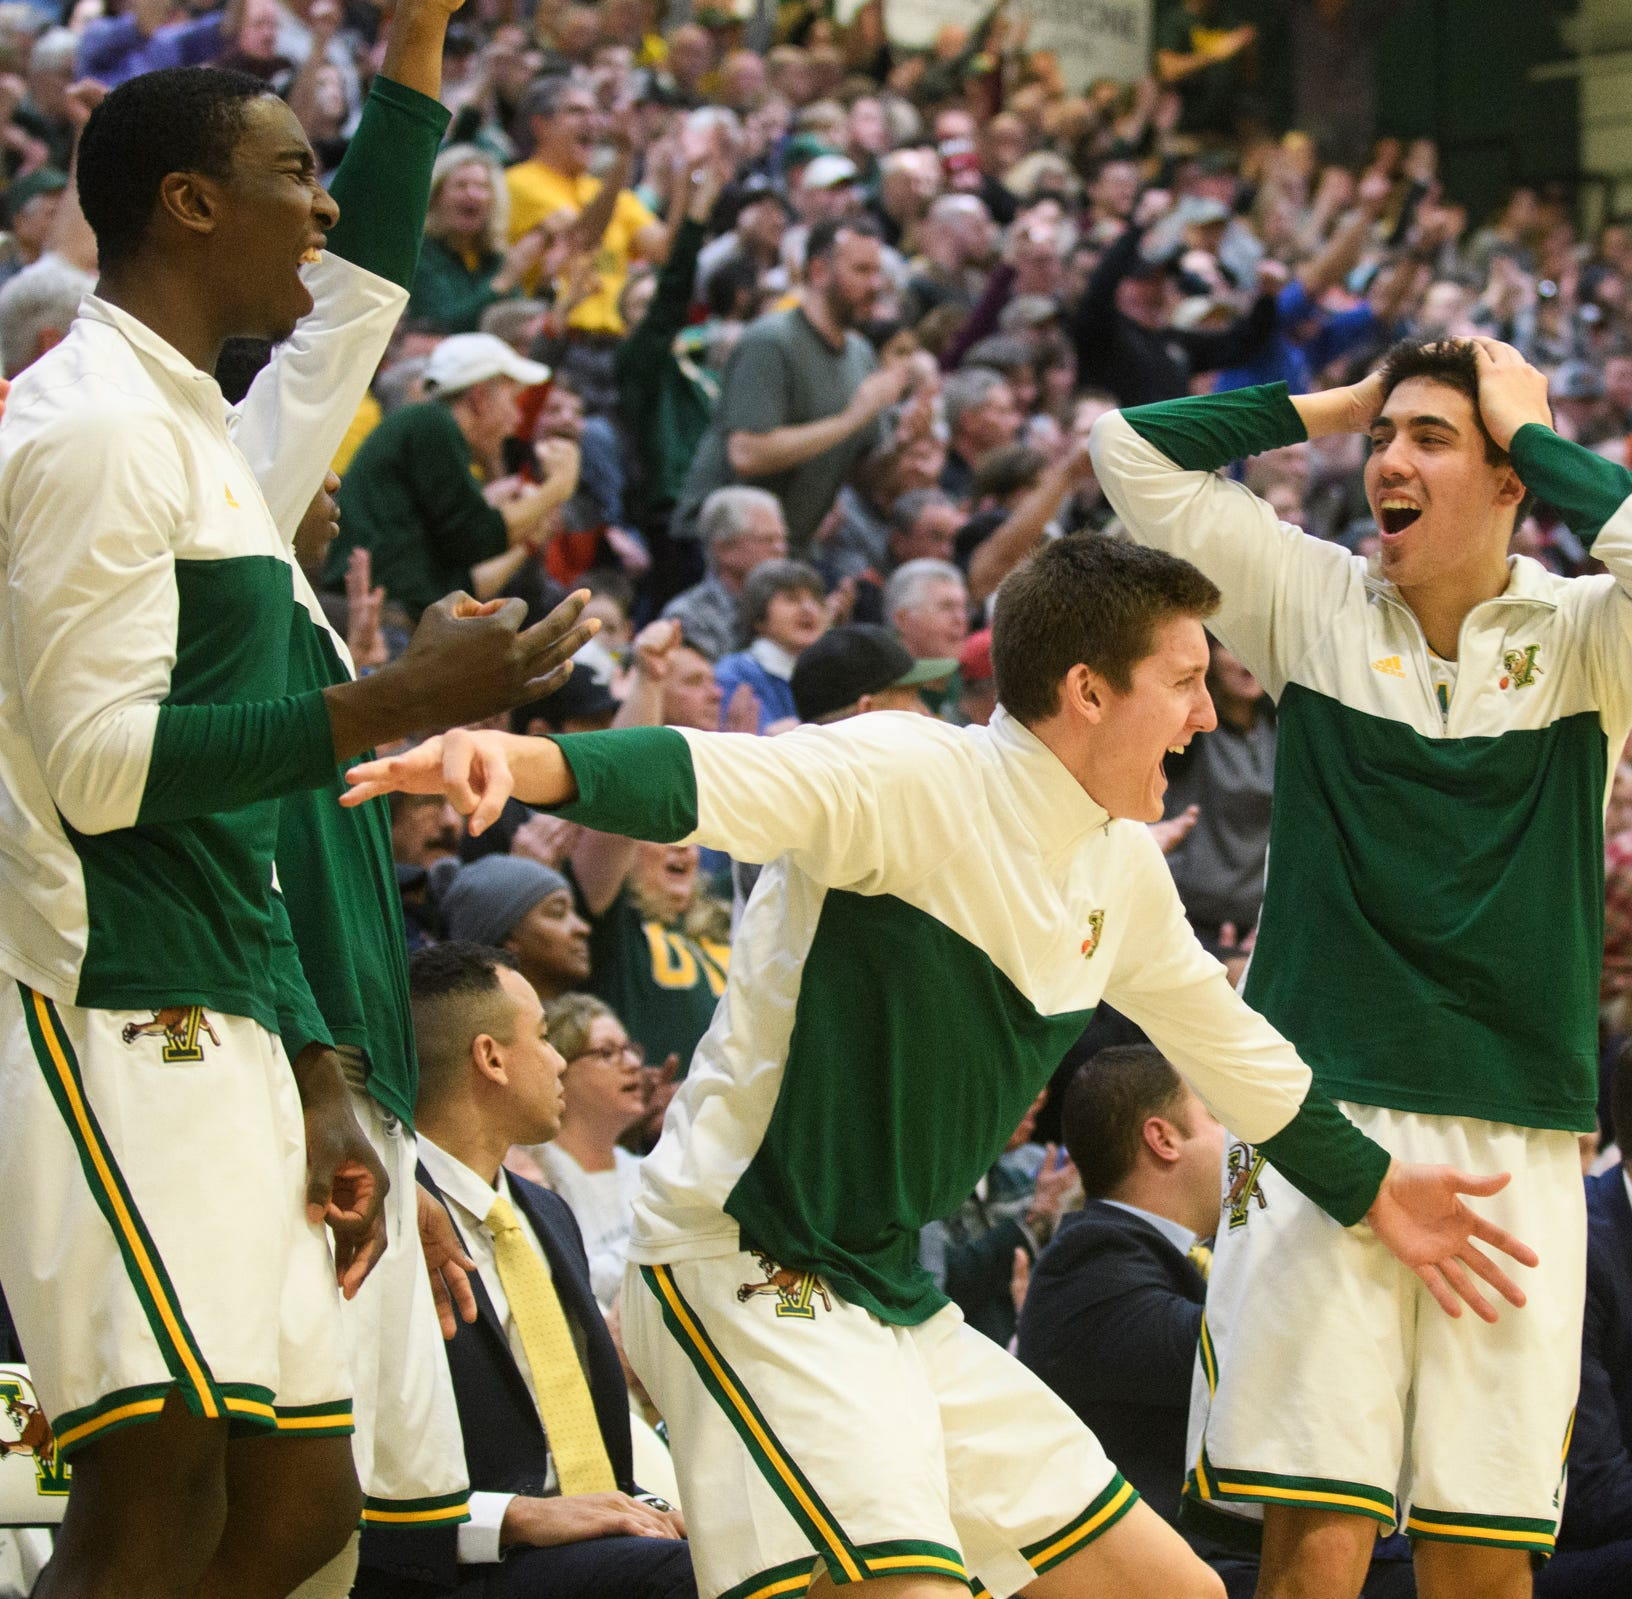 America East basketball championship: A by-the-numbers look at UVM vs. UMBC